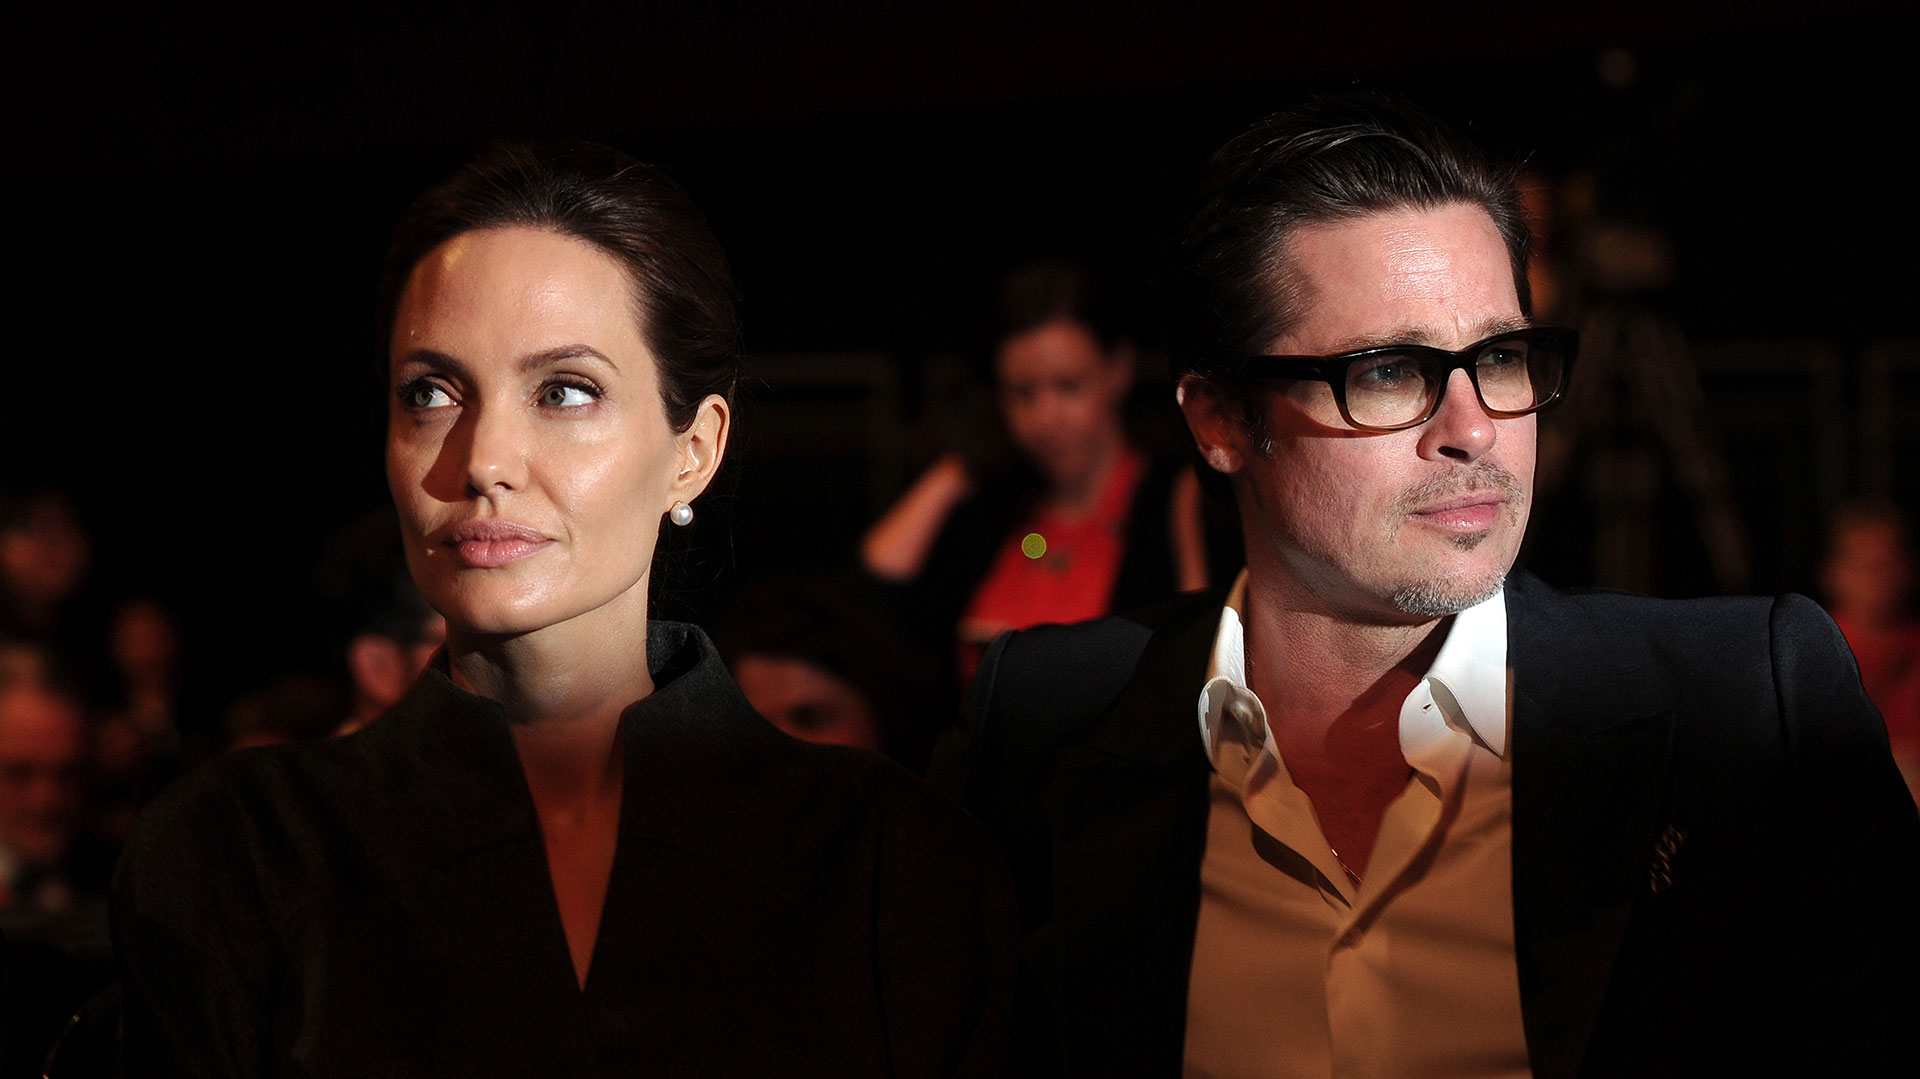 Angelina Jolie no quiere compartir la custodia legal de sus hijos con Brad Pitt (AFP)